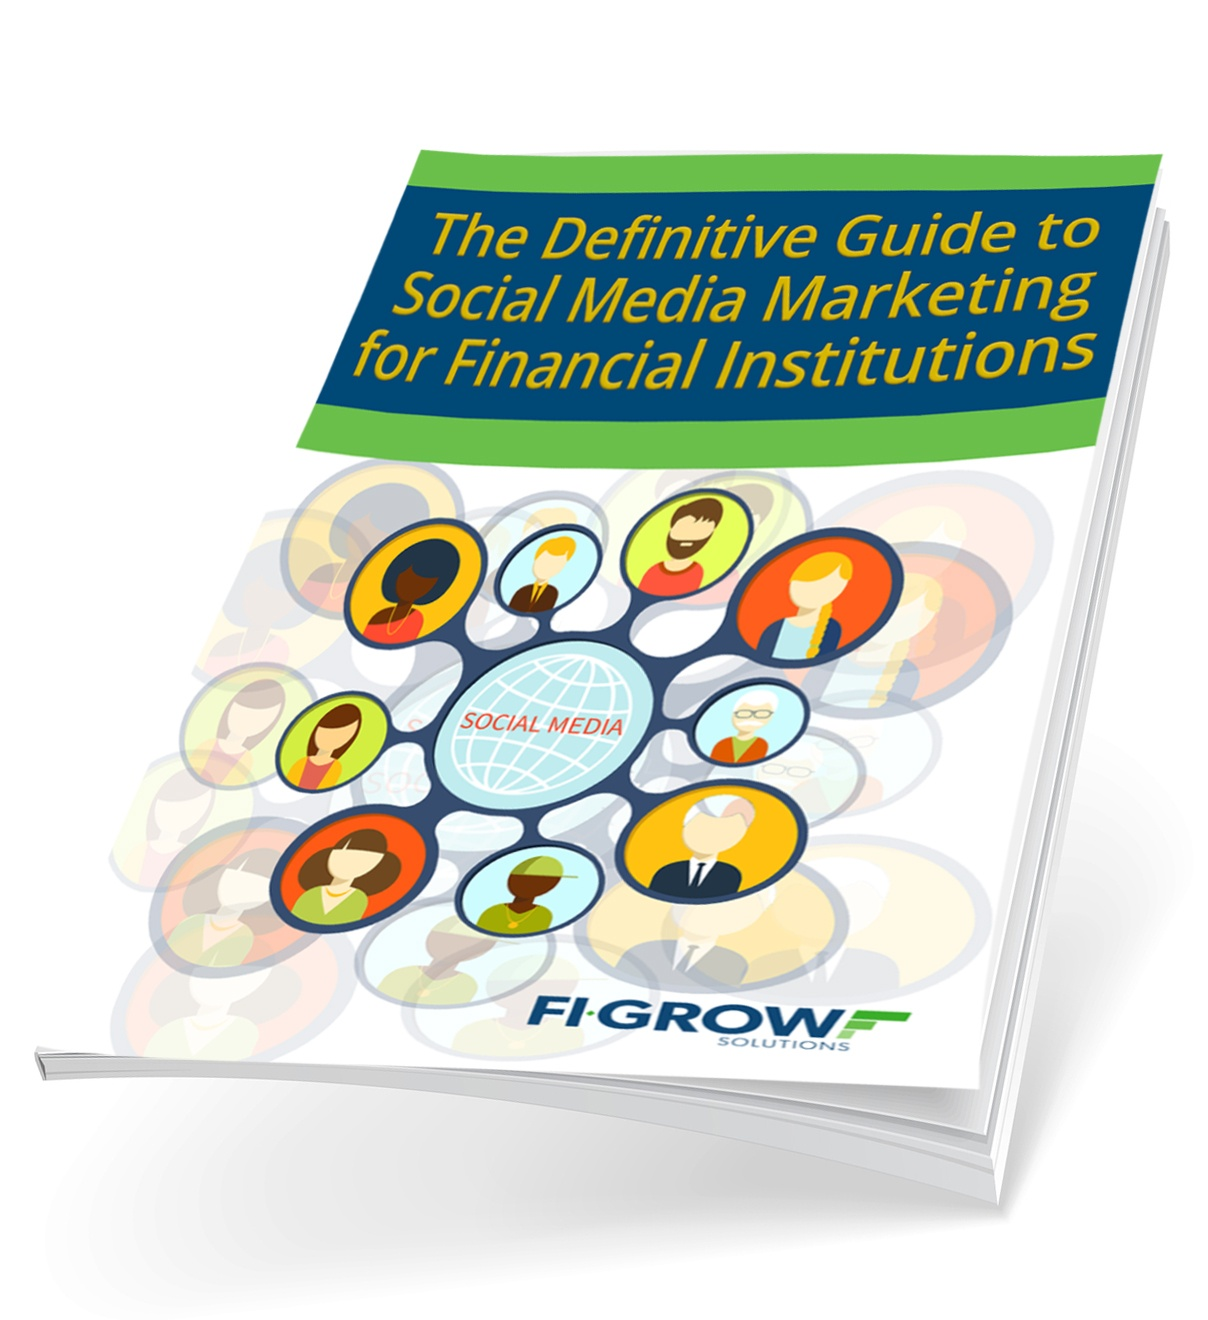 guide to social media marketing for financial institutions cover image